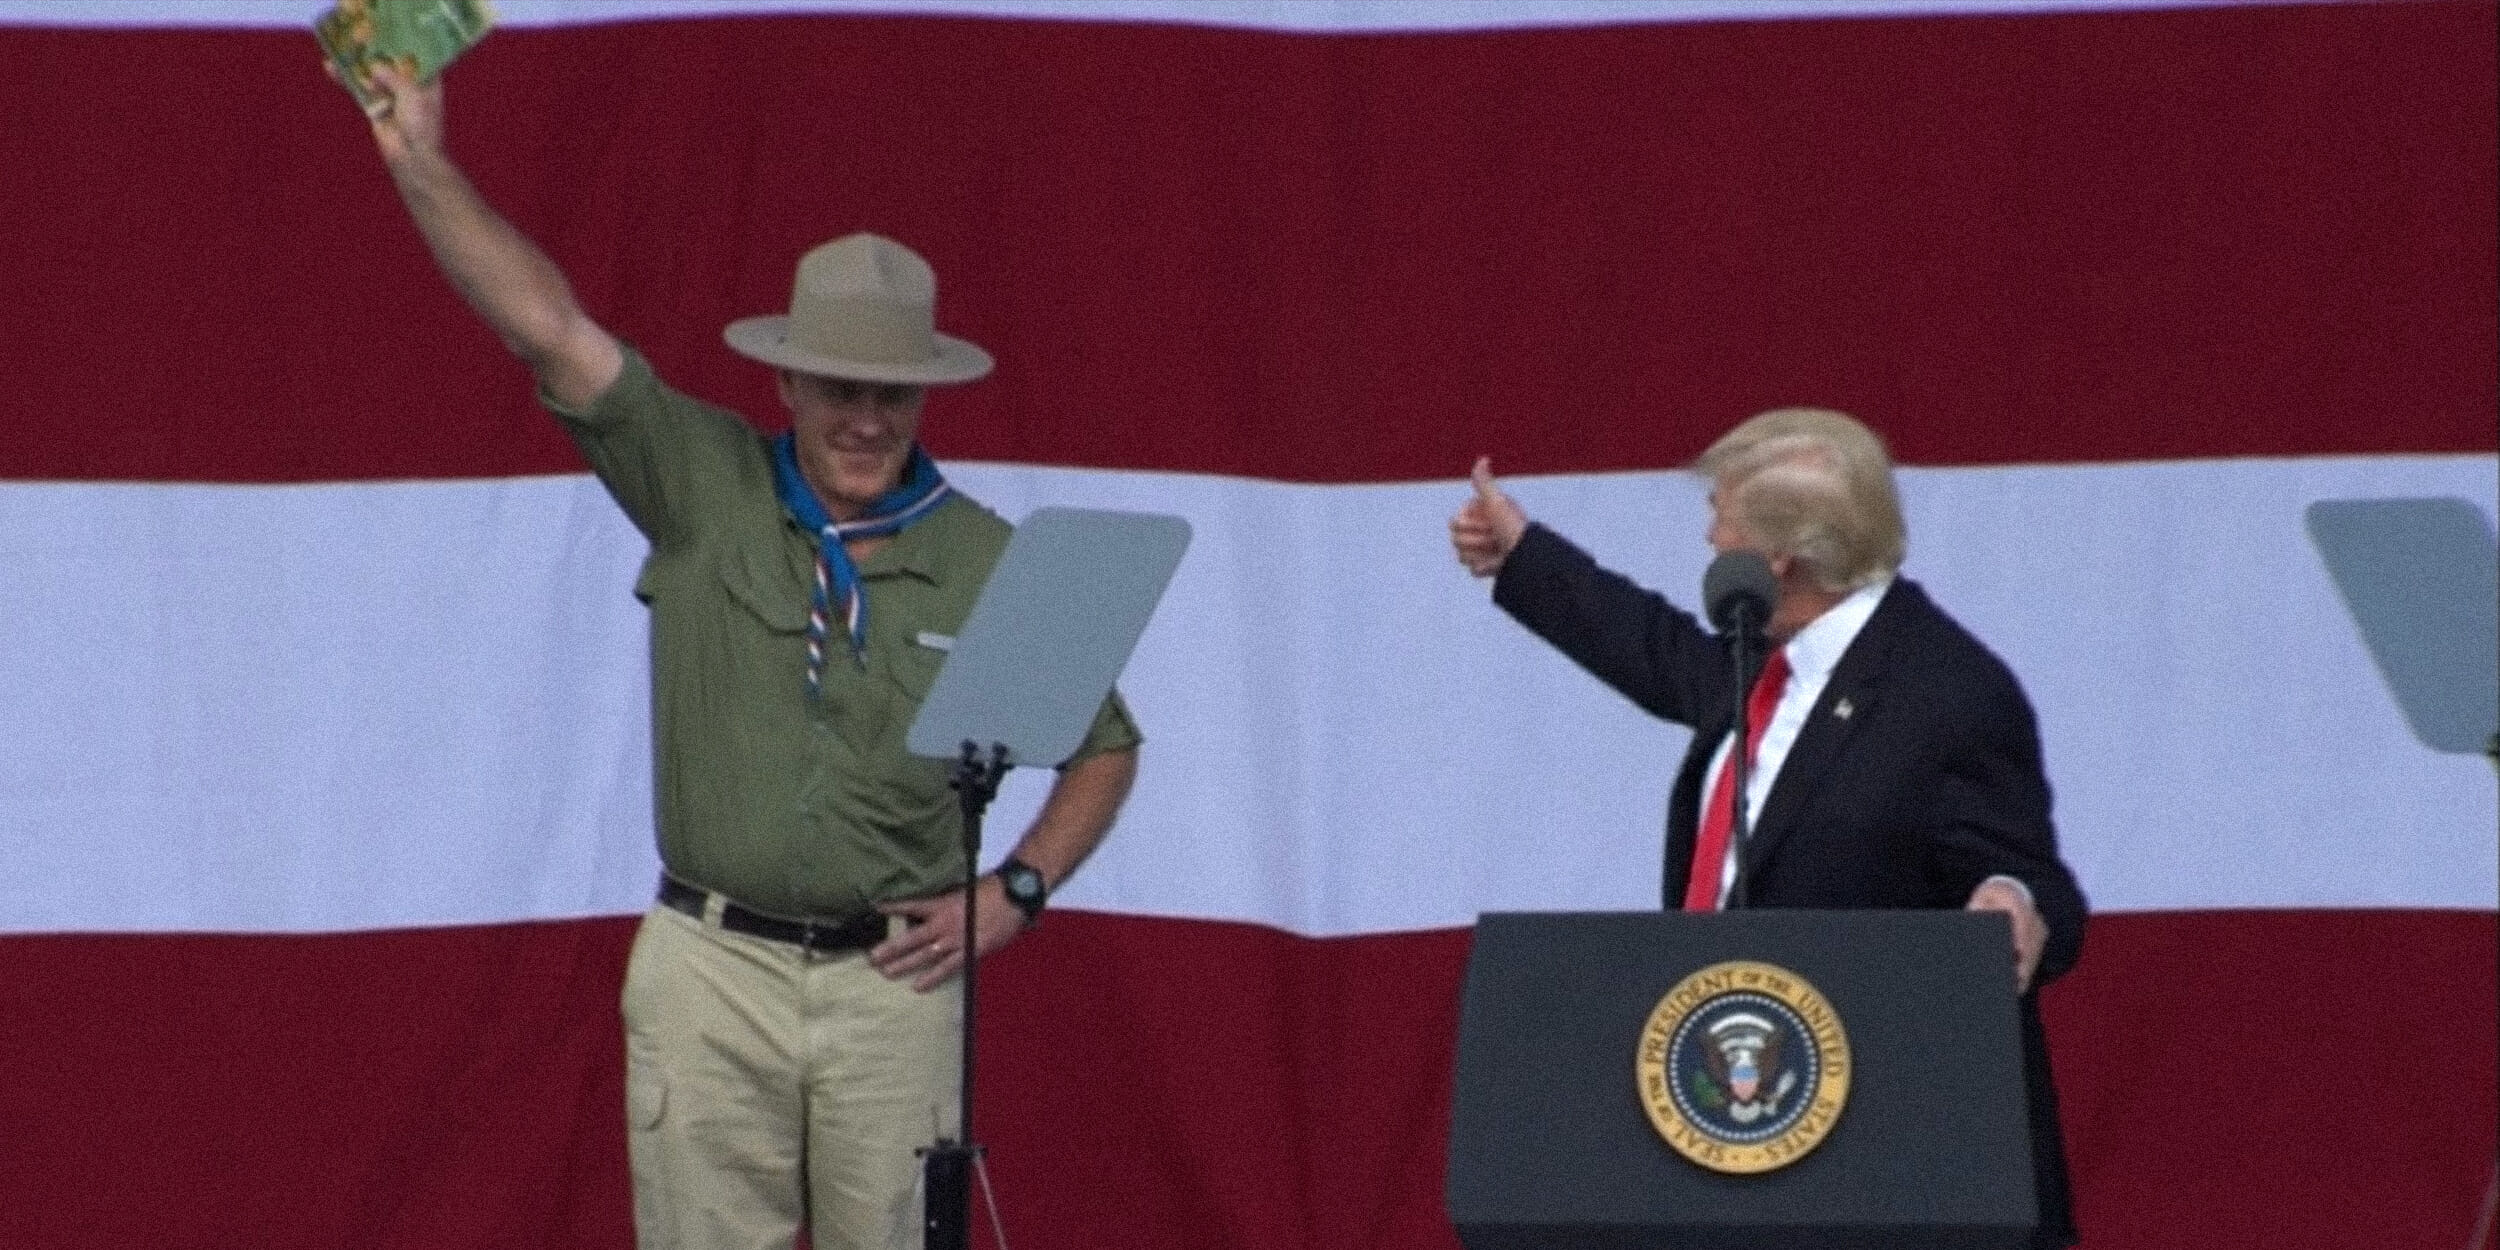 Donald Trump gives thumbs-up to Eagle Scout Ryan Zinke